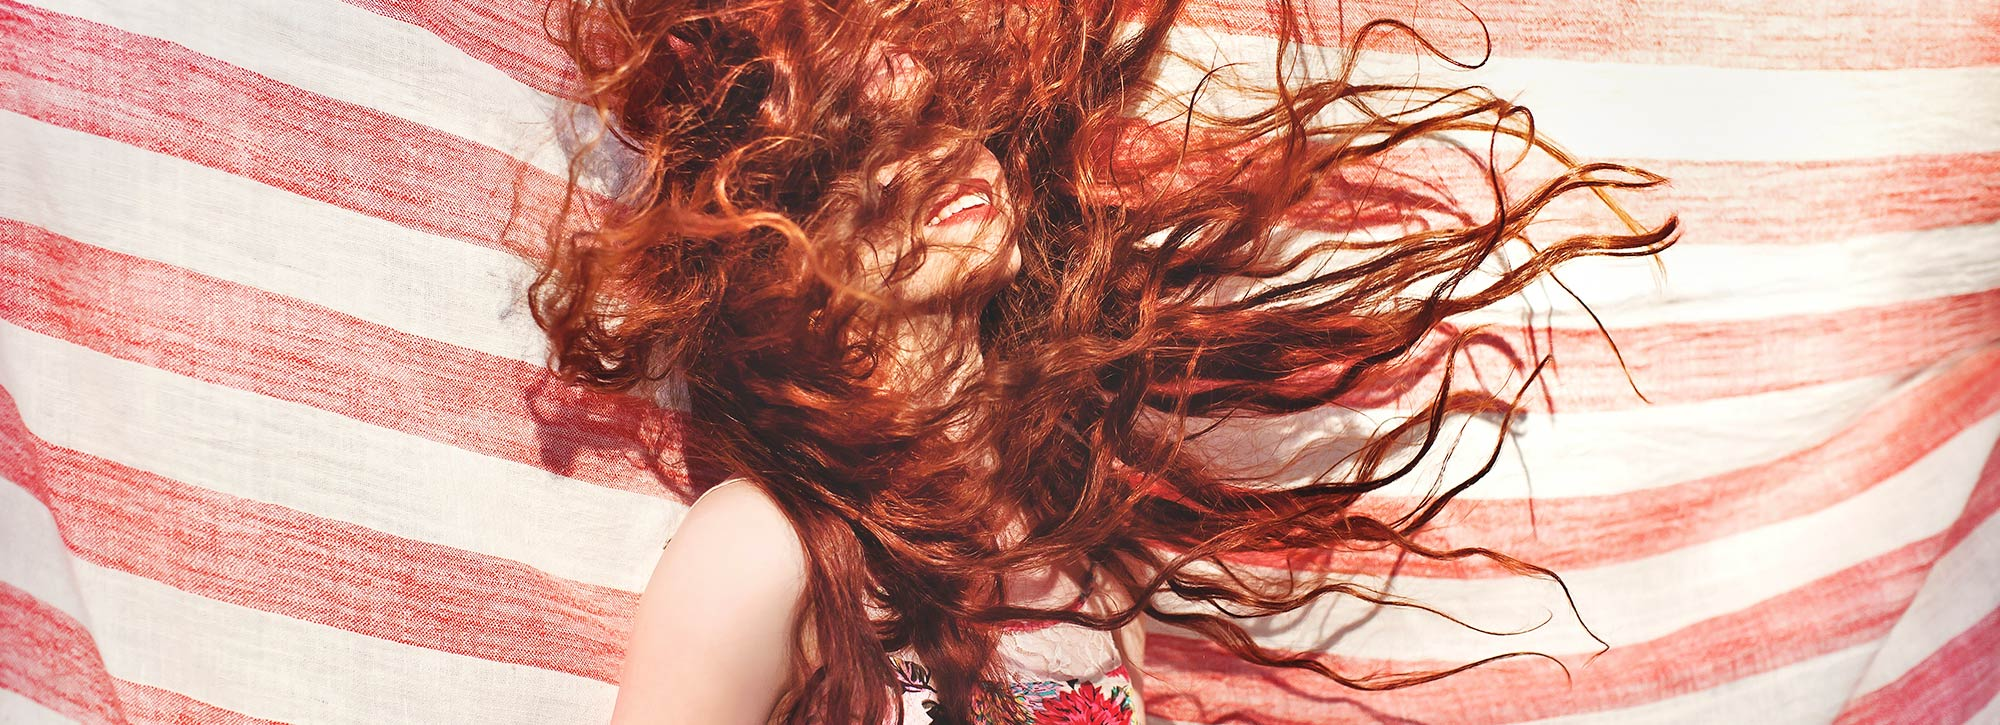 Redhead: Ginger, Auburn, Strawberry blonde or Titian